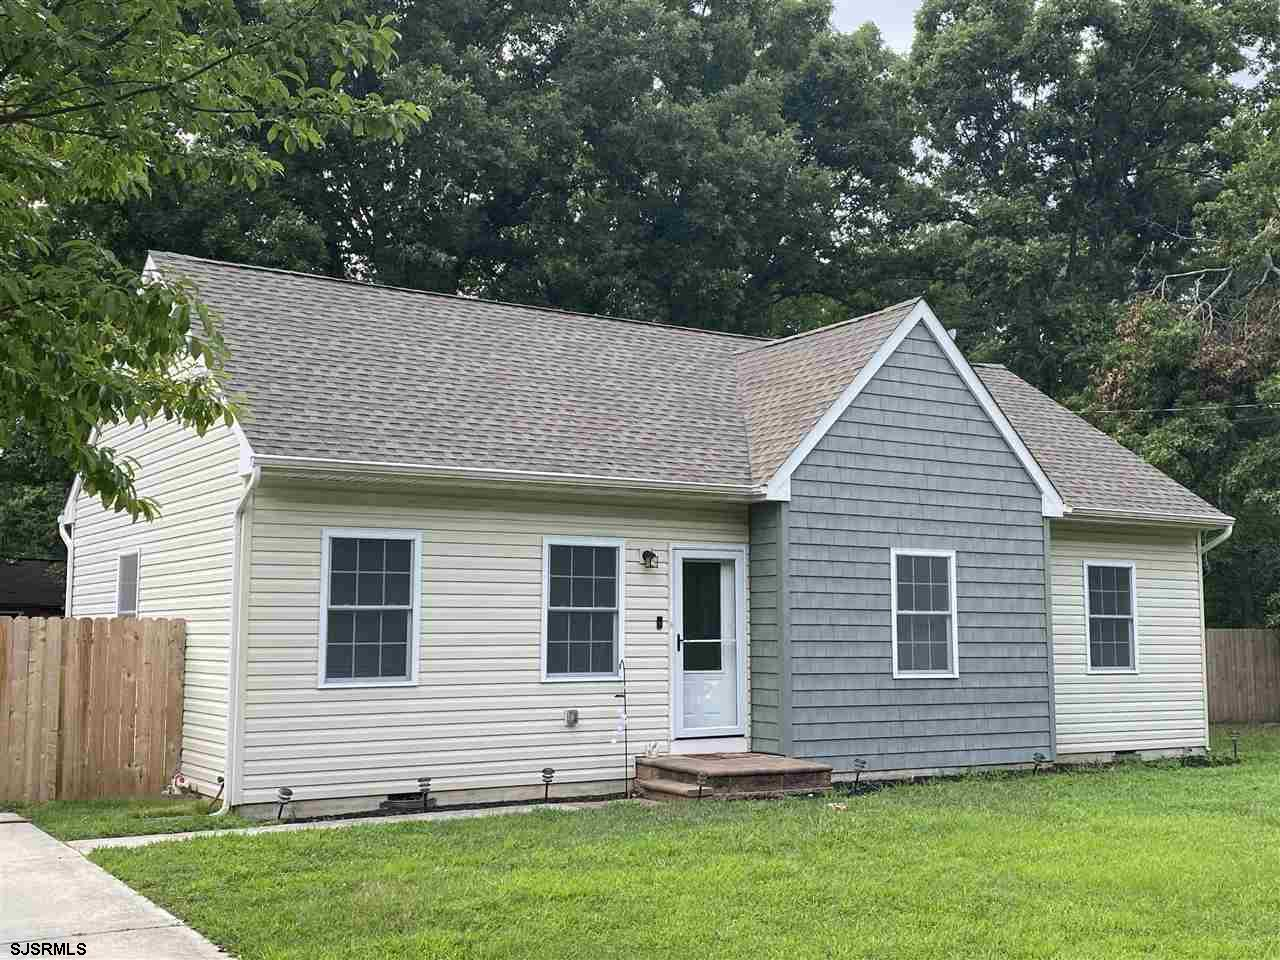 Welcome Home to this quaint 3 bedroom, 1 bath home located on a quiet cul-de-sac in Egg Harbor Twp.